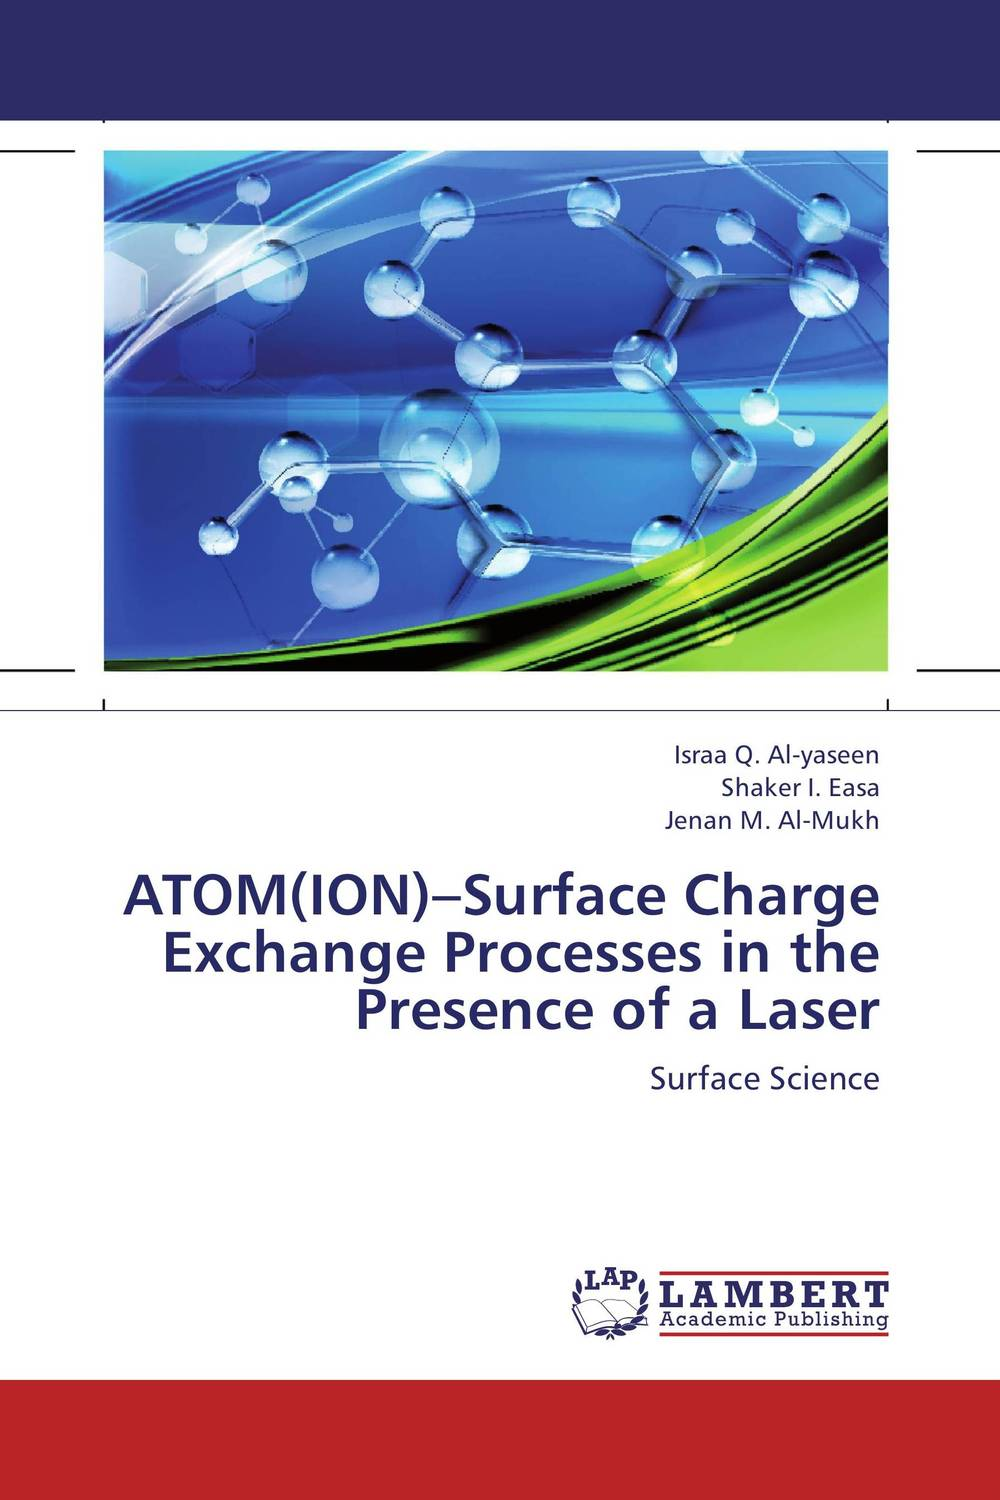 ATOM(ION)–Surface Charge Exchange Processes in the Presence of a Laser infrared allergic rhinitis treatment machine hay fever chronic rhinitis laser therapeutic apparatus